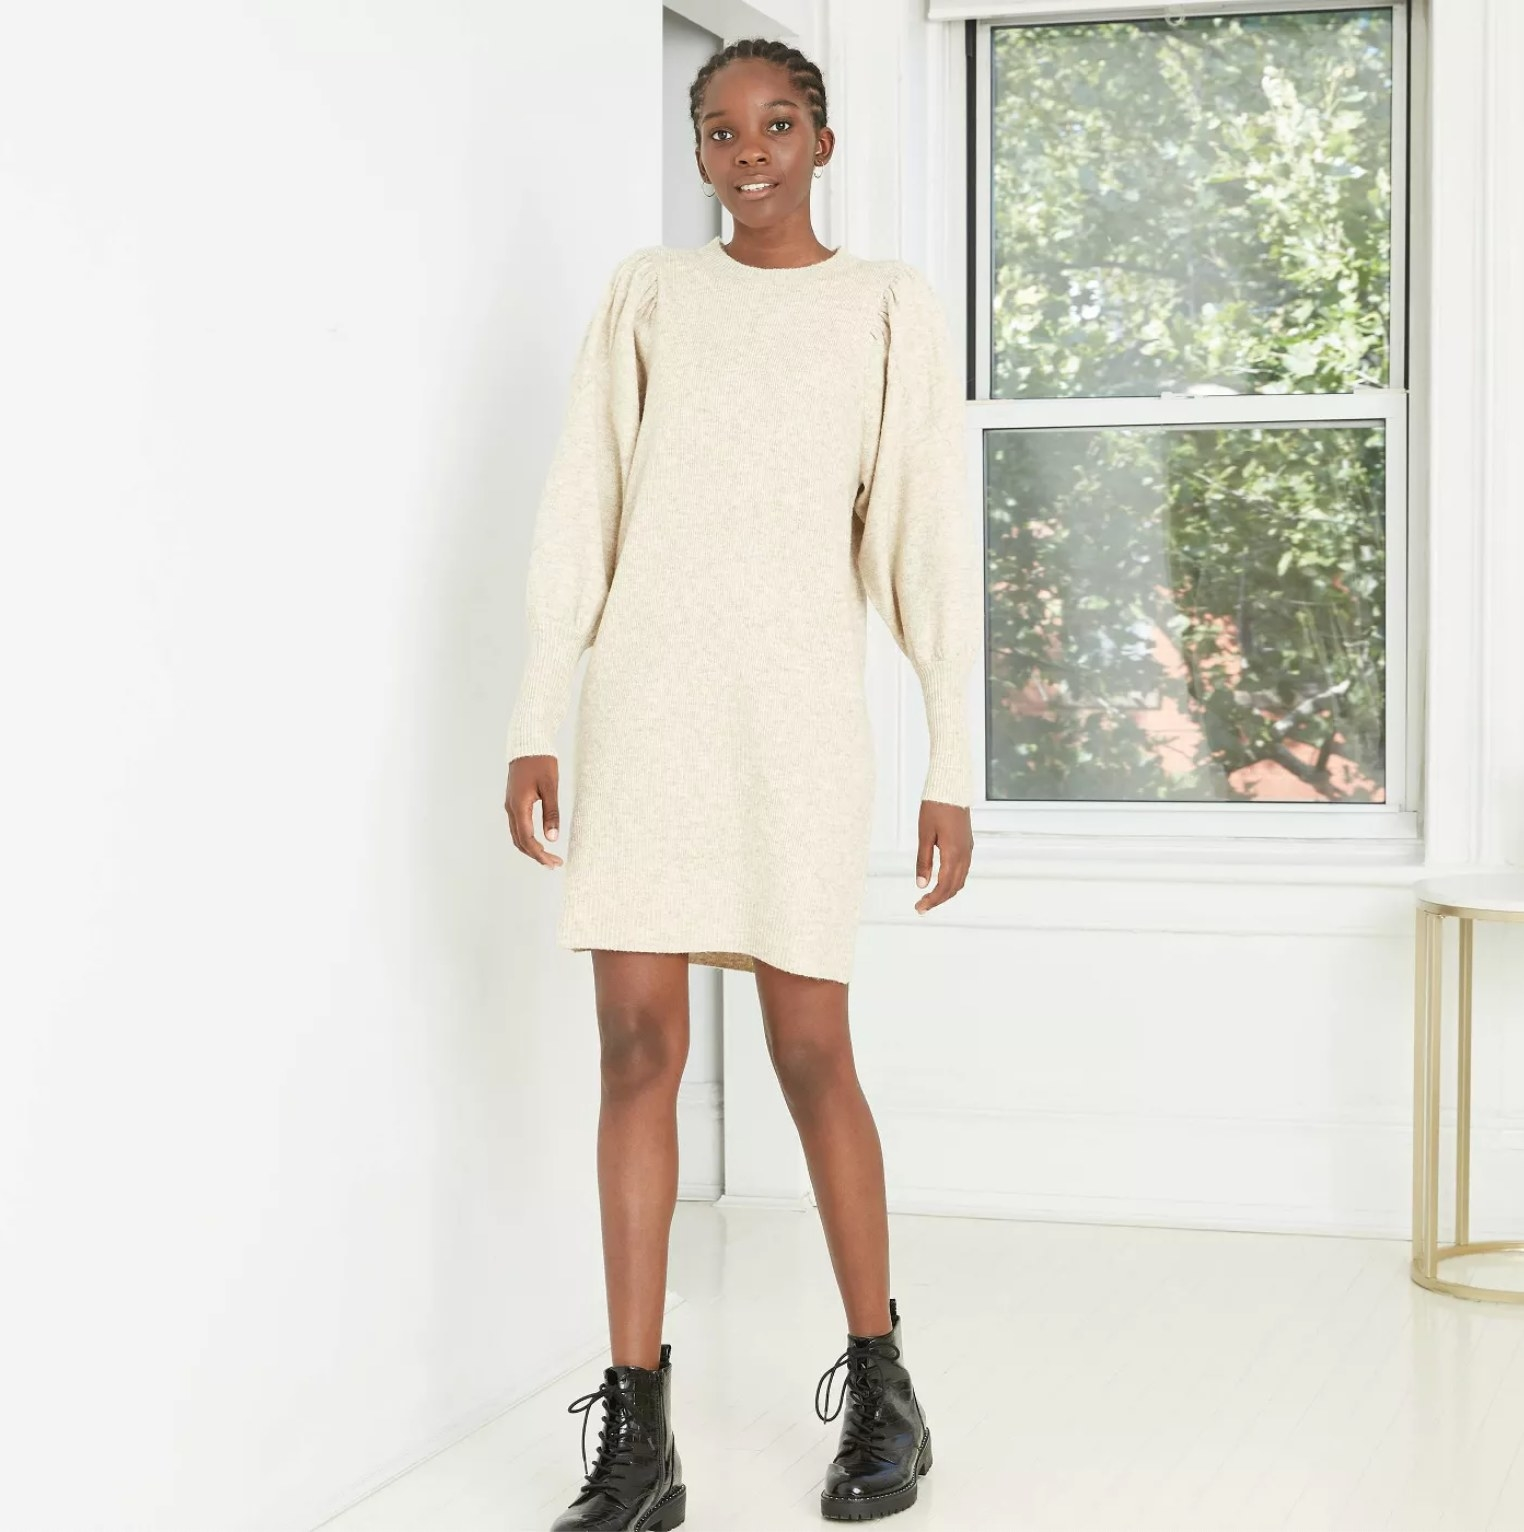 The model wearing the dress in cream